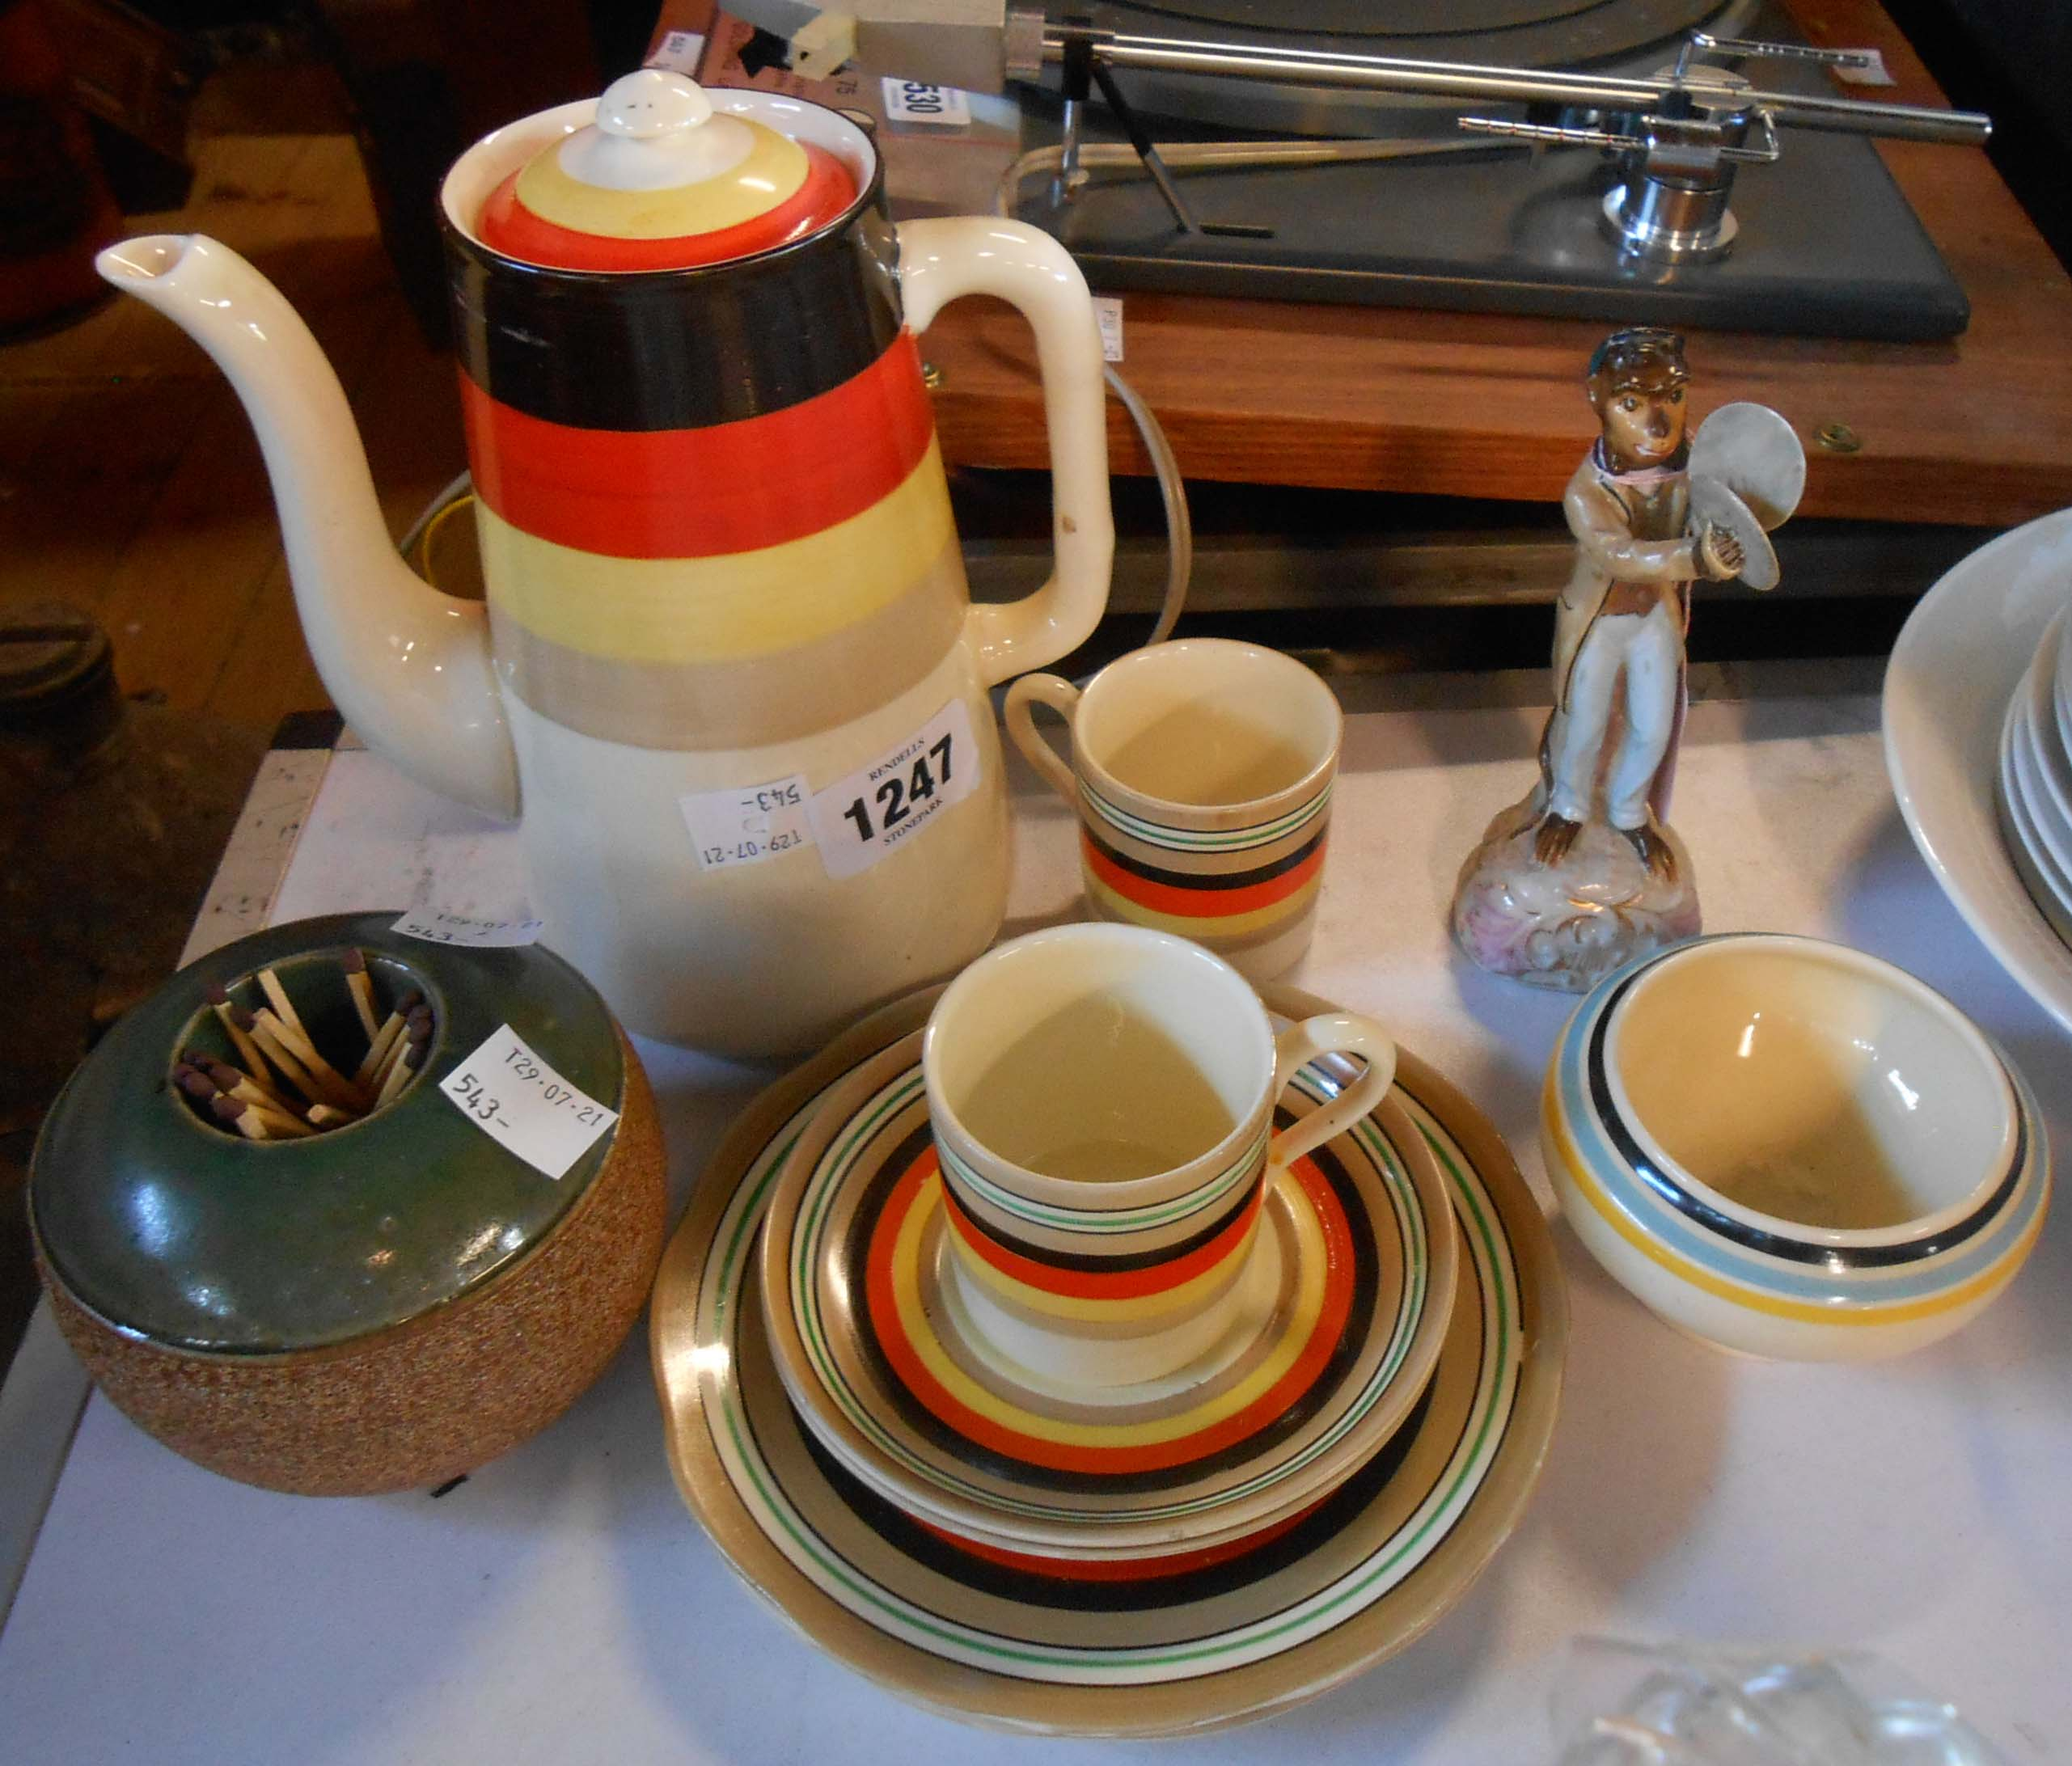 An Art Deco Bisto rainbow ware coffee pot and two trios with colourful banded decoration - sold with